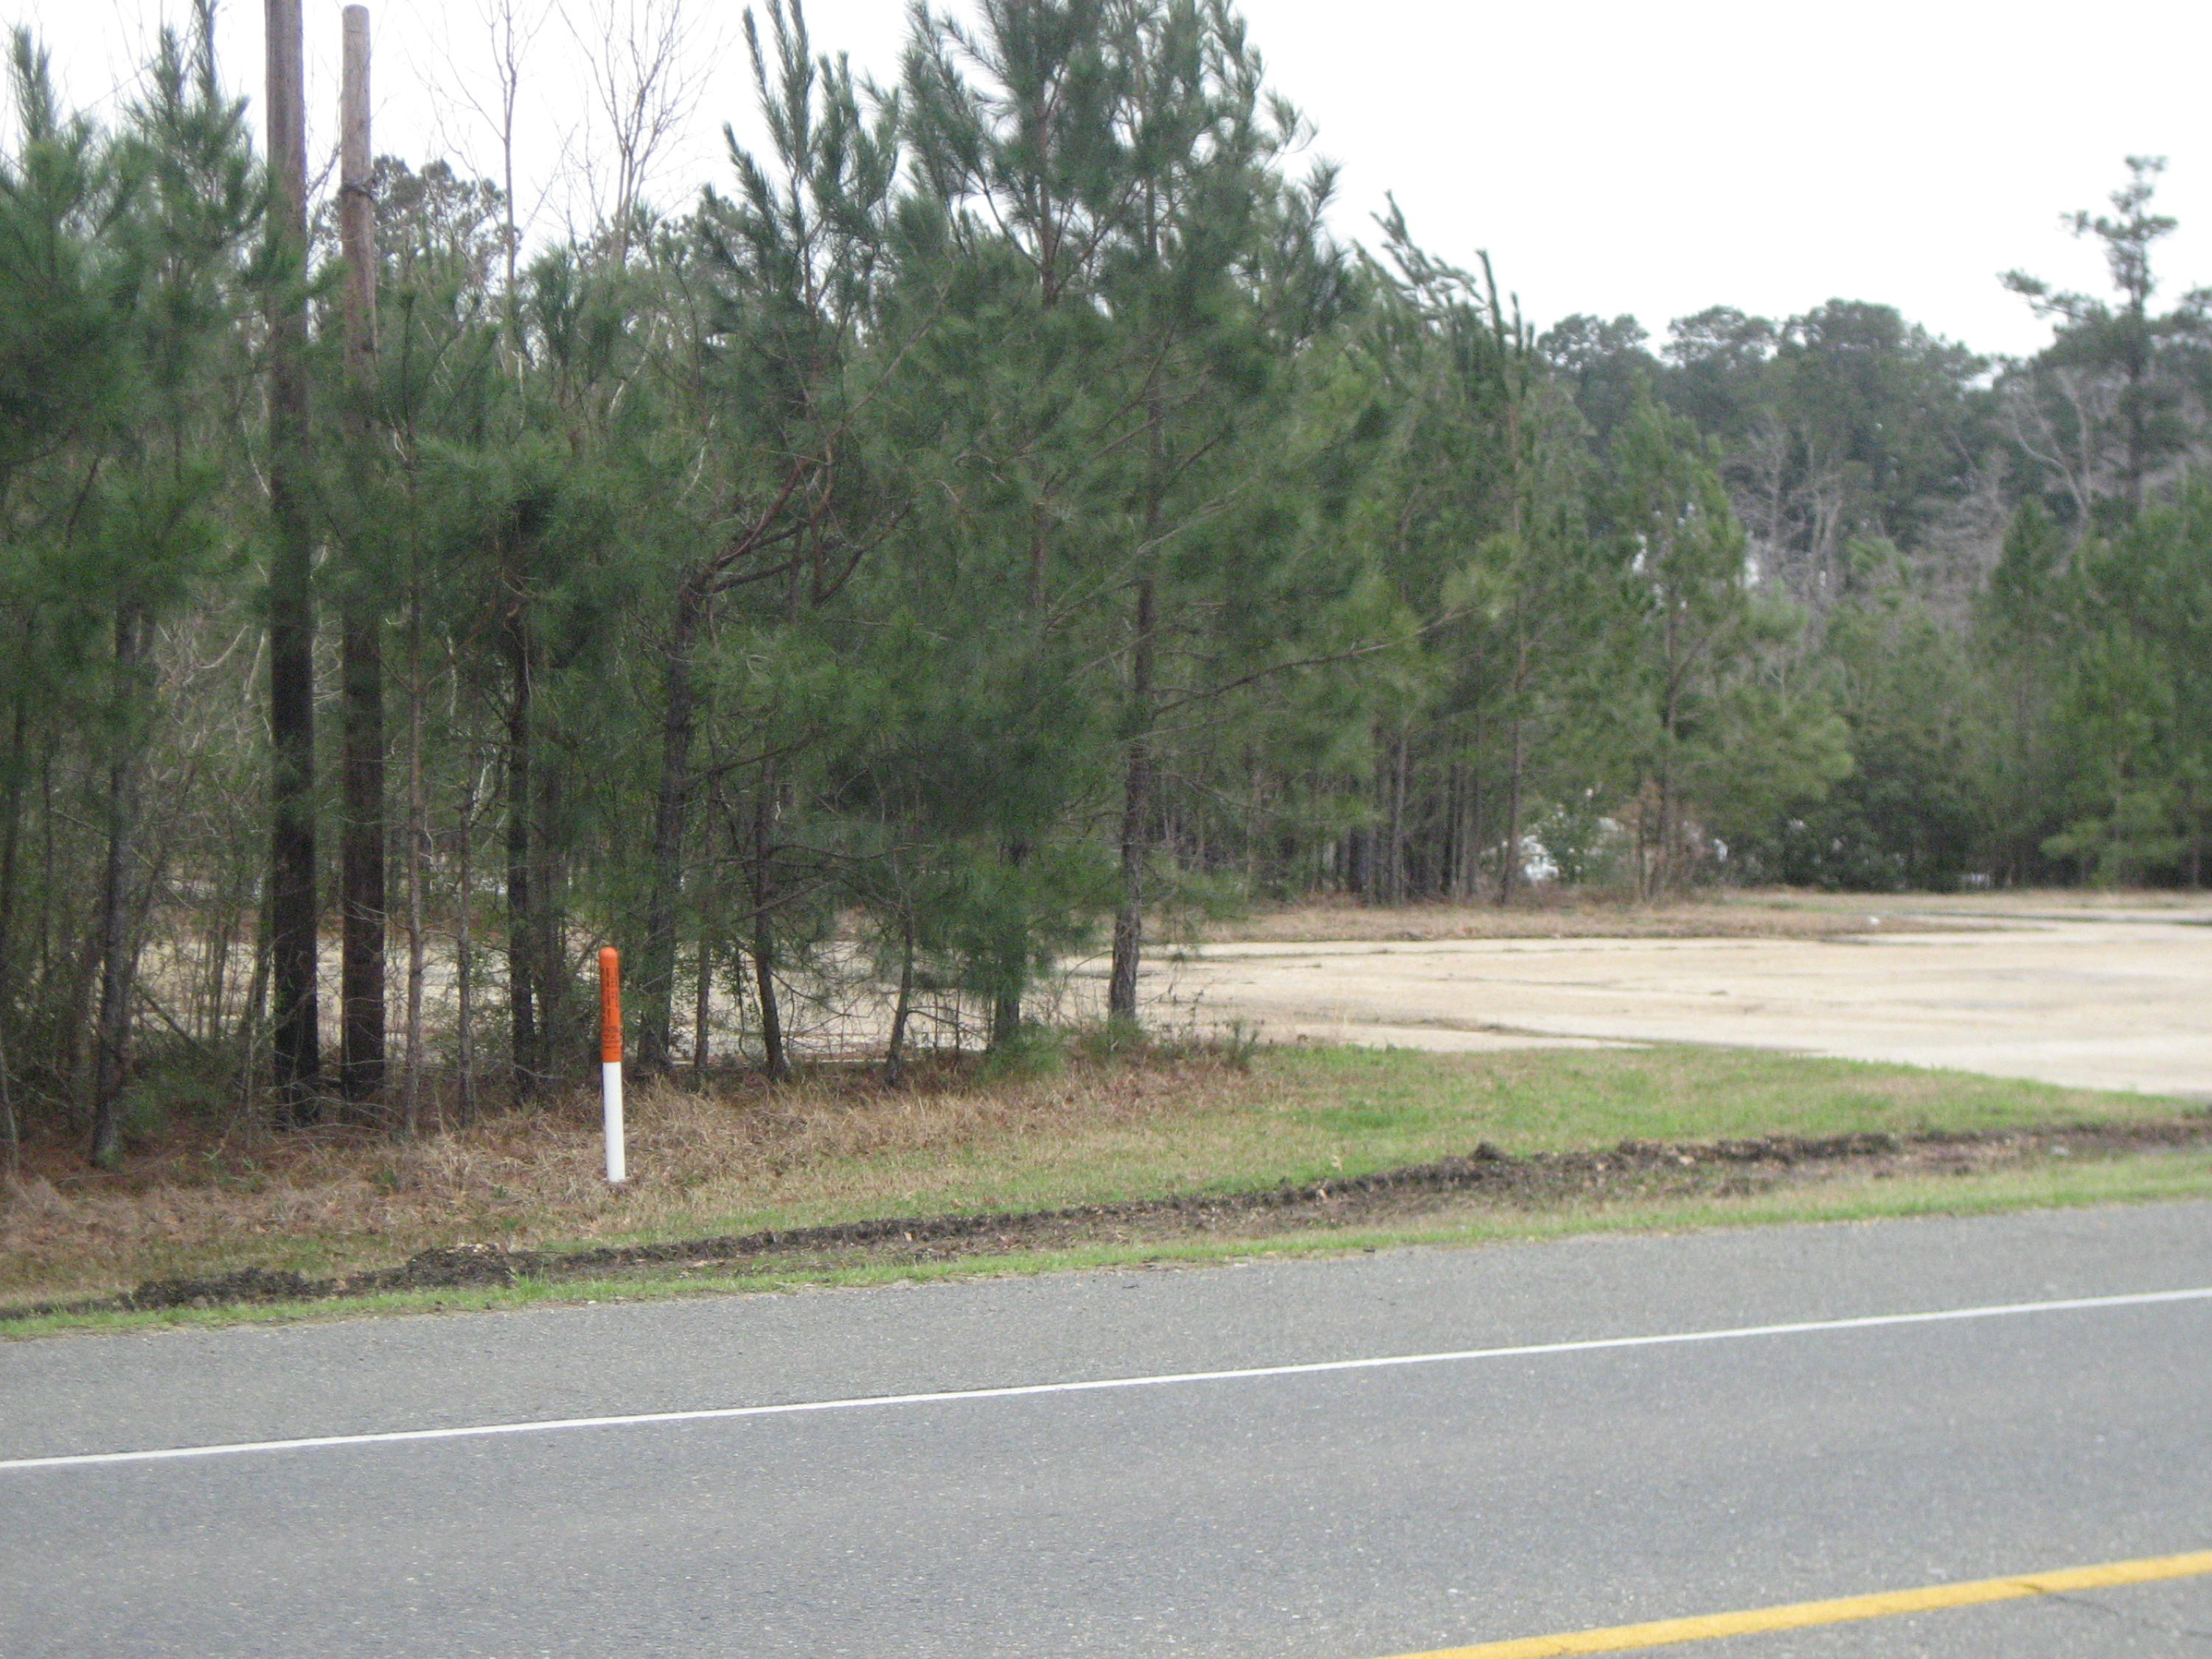 DeRidder land for sale,  1785 HWY 190, DeRidder LA - $223,000